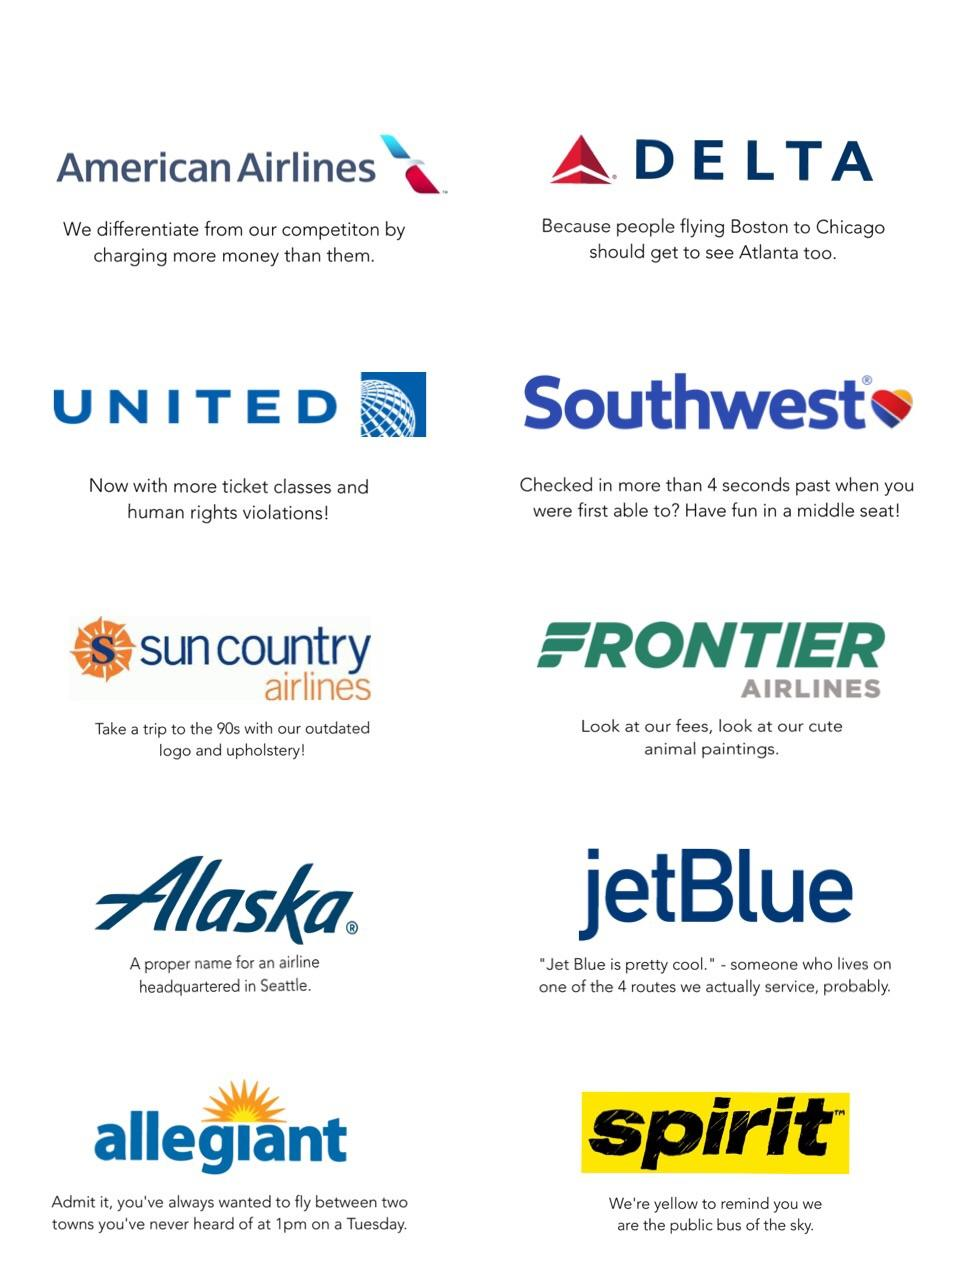 American Airlines Slogan : american, airlines, slogan, Every, Airline, Honest, Slogan, Funny